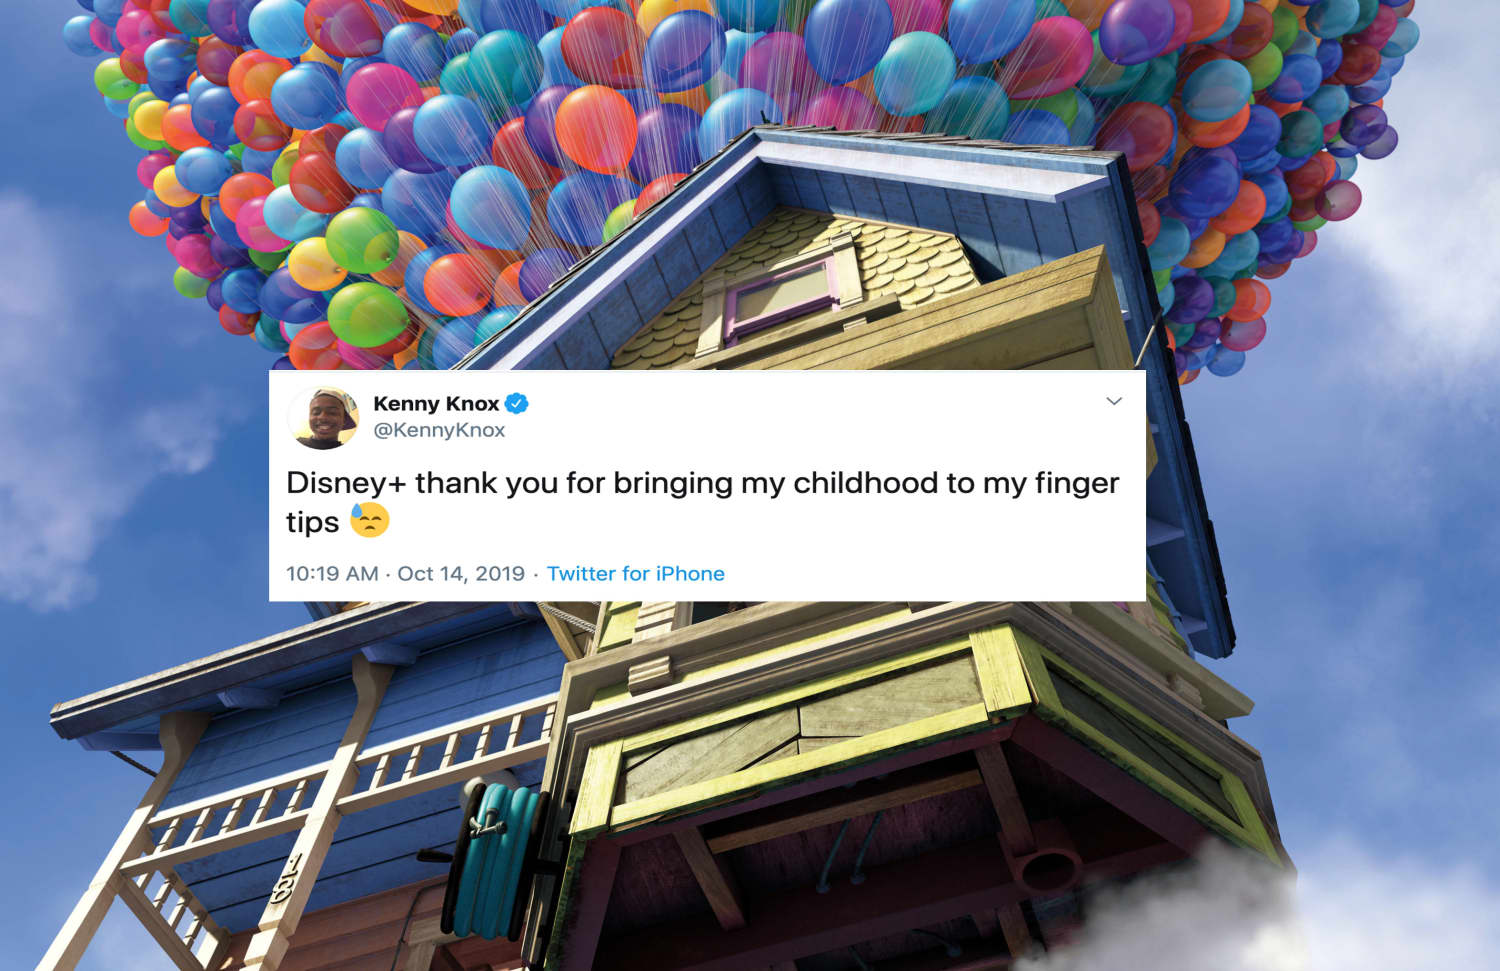 Disney Keeps Teasing All of the Movies That'll be on Disney+, And Twitter Is Loving It